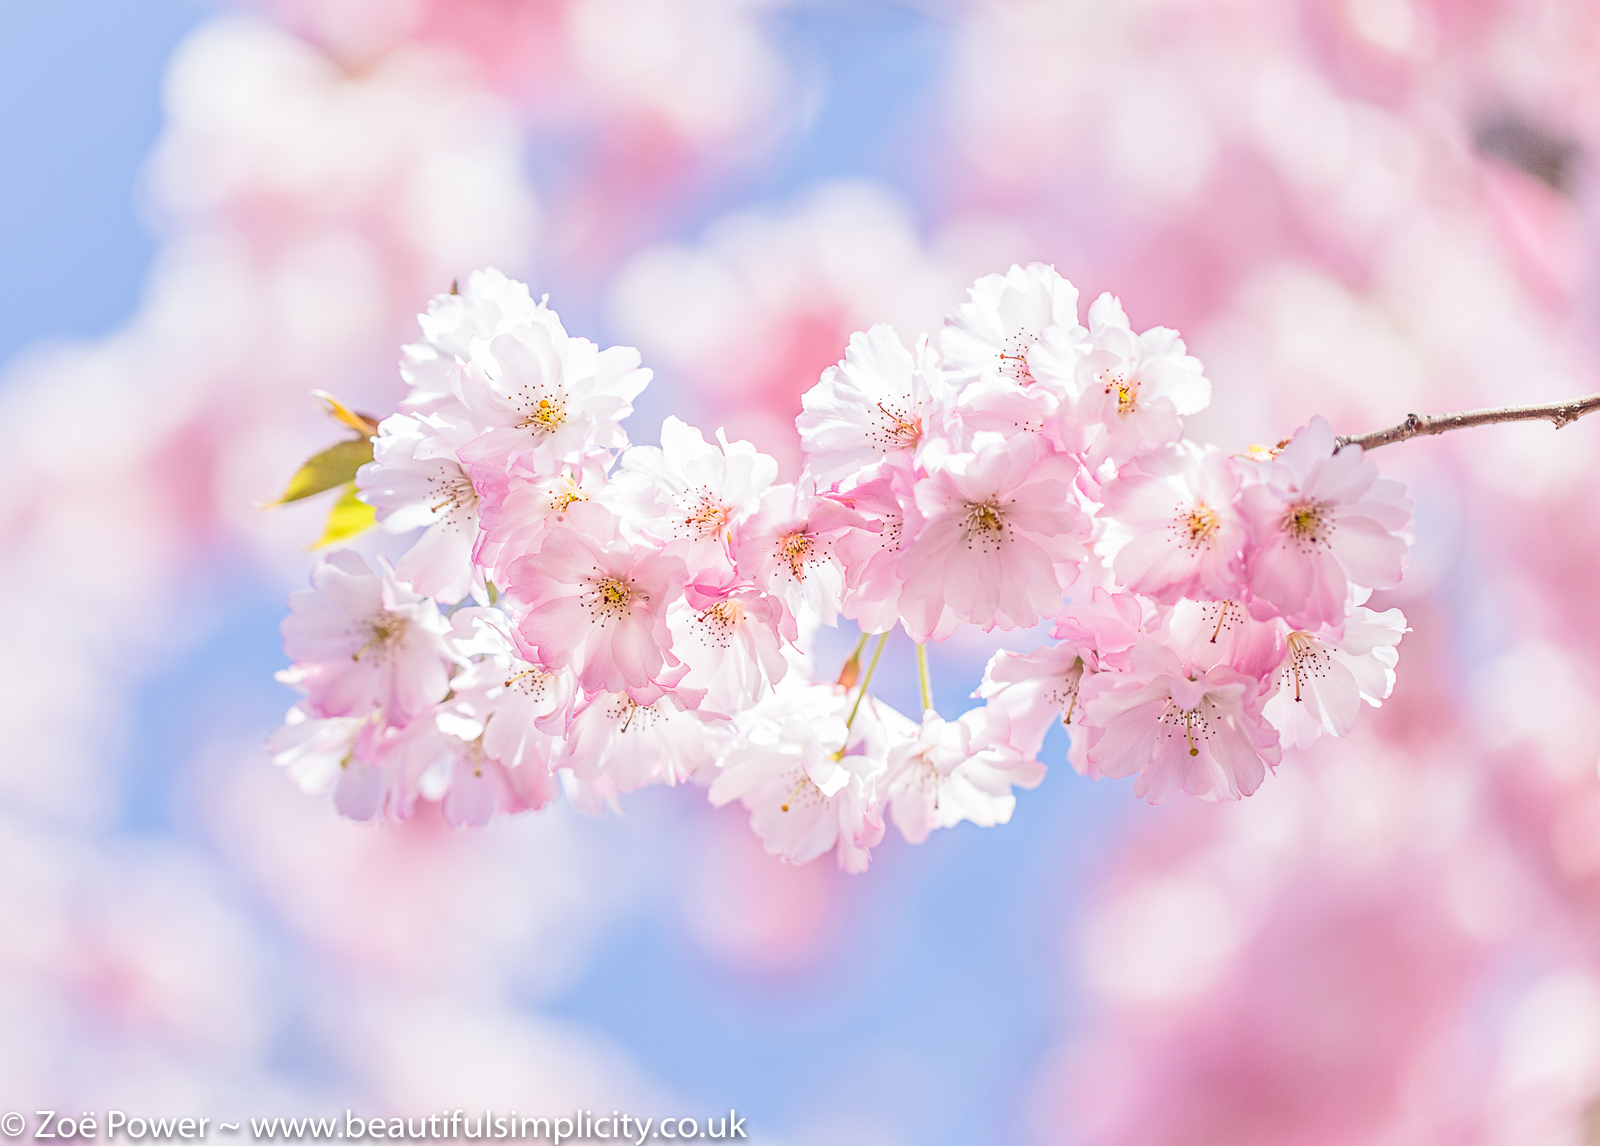 Cherry blossom | Chronic Fatigue Syndrome (CFS)/ME - My Story - Part 1 of 3